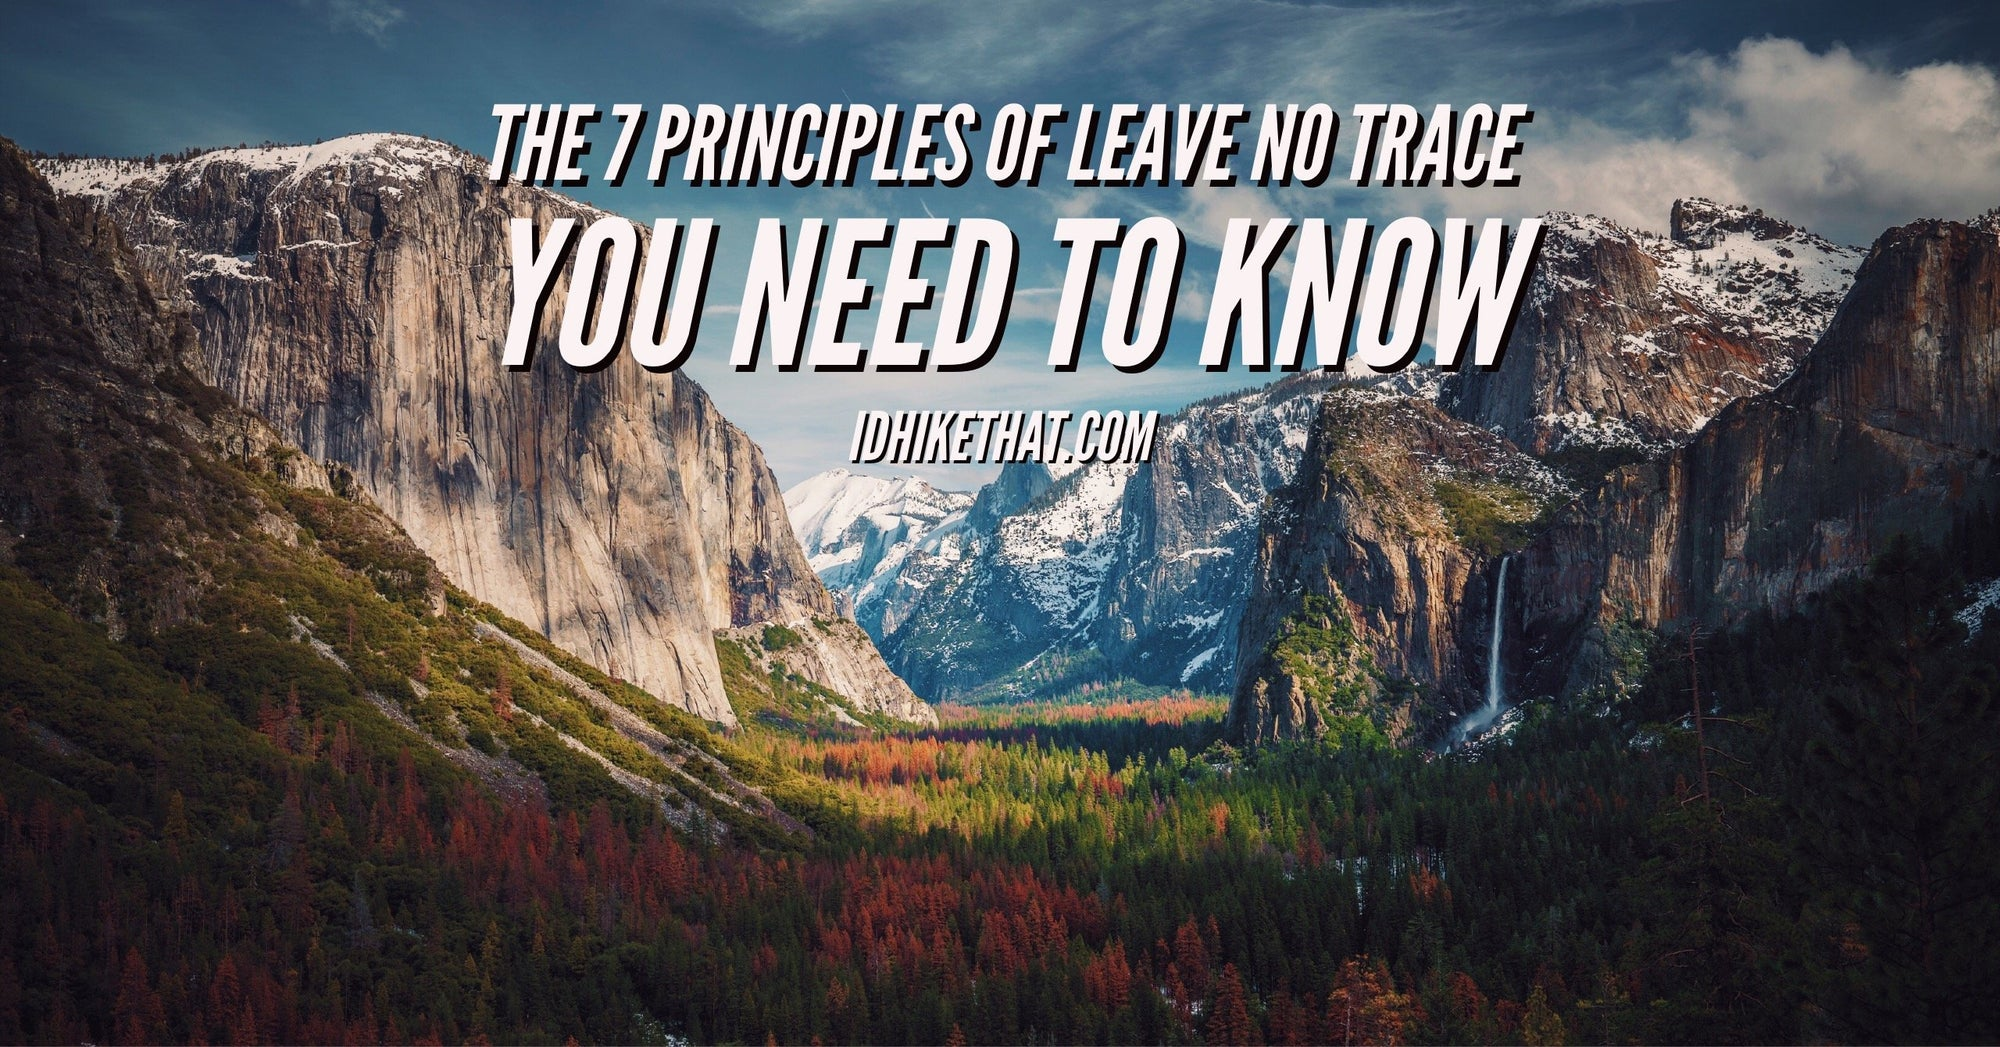 Visit idhikethat.com to learn the 7 principles of Leave No Trace.